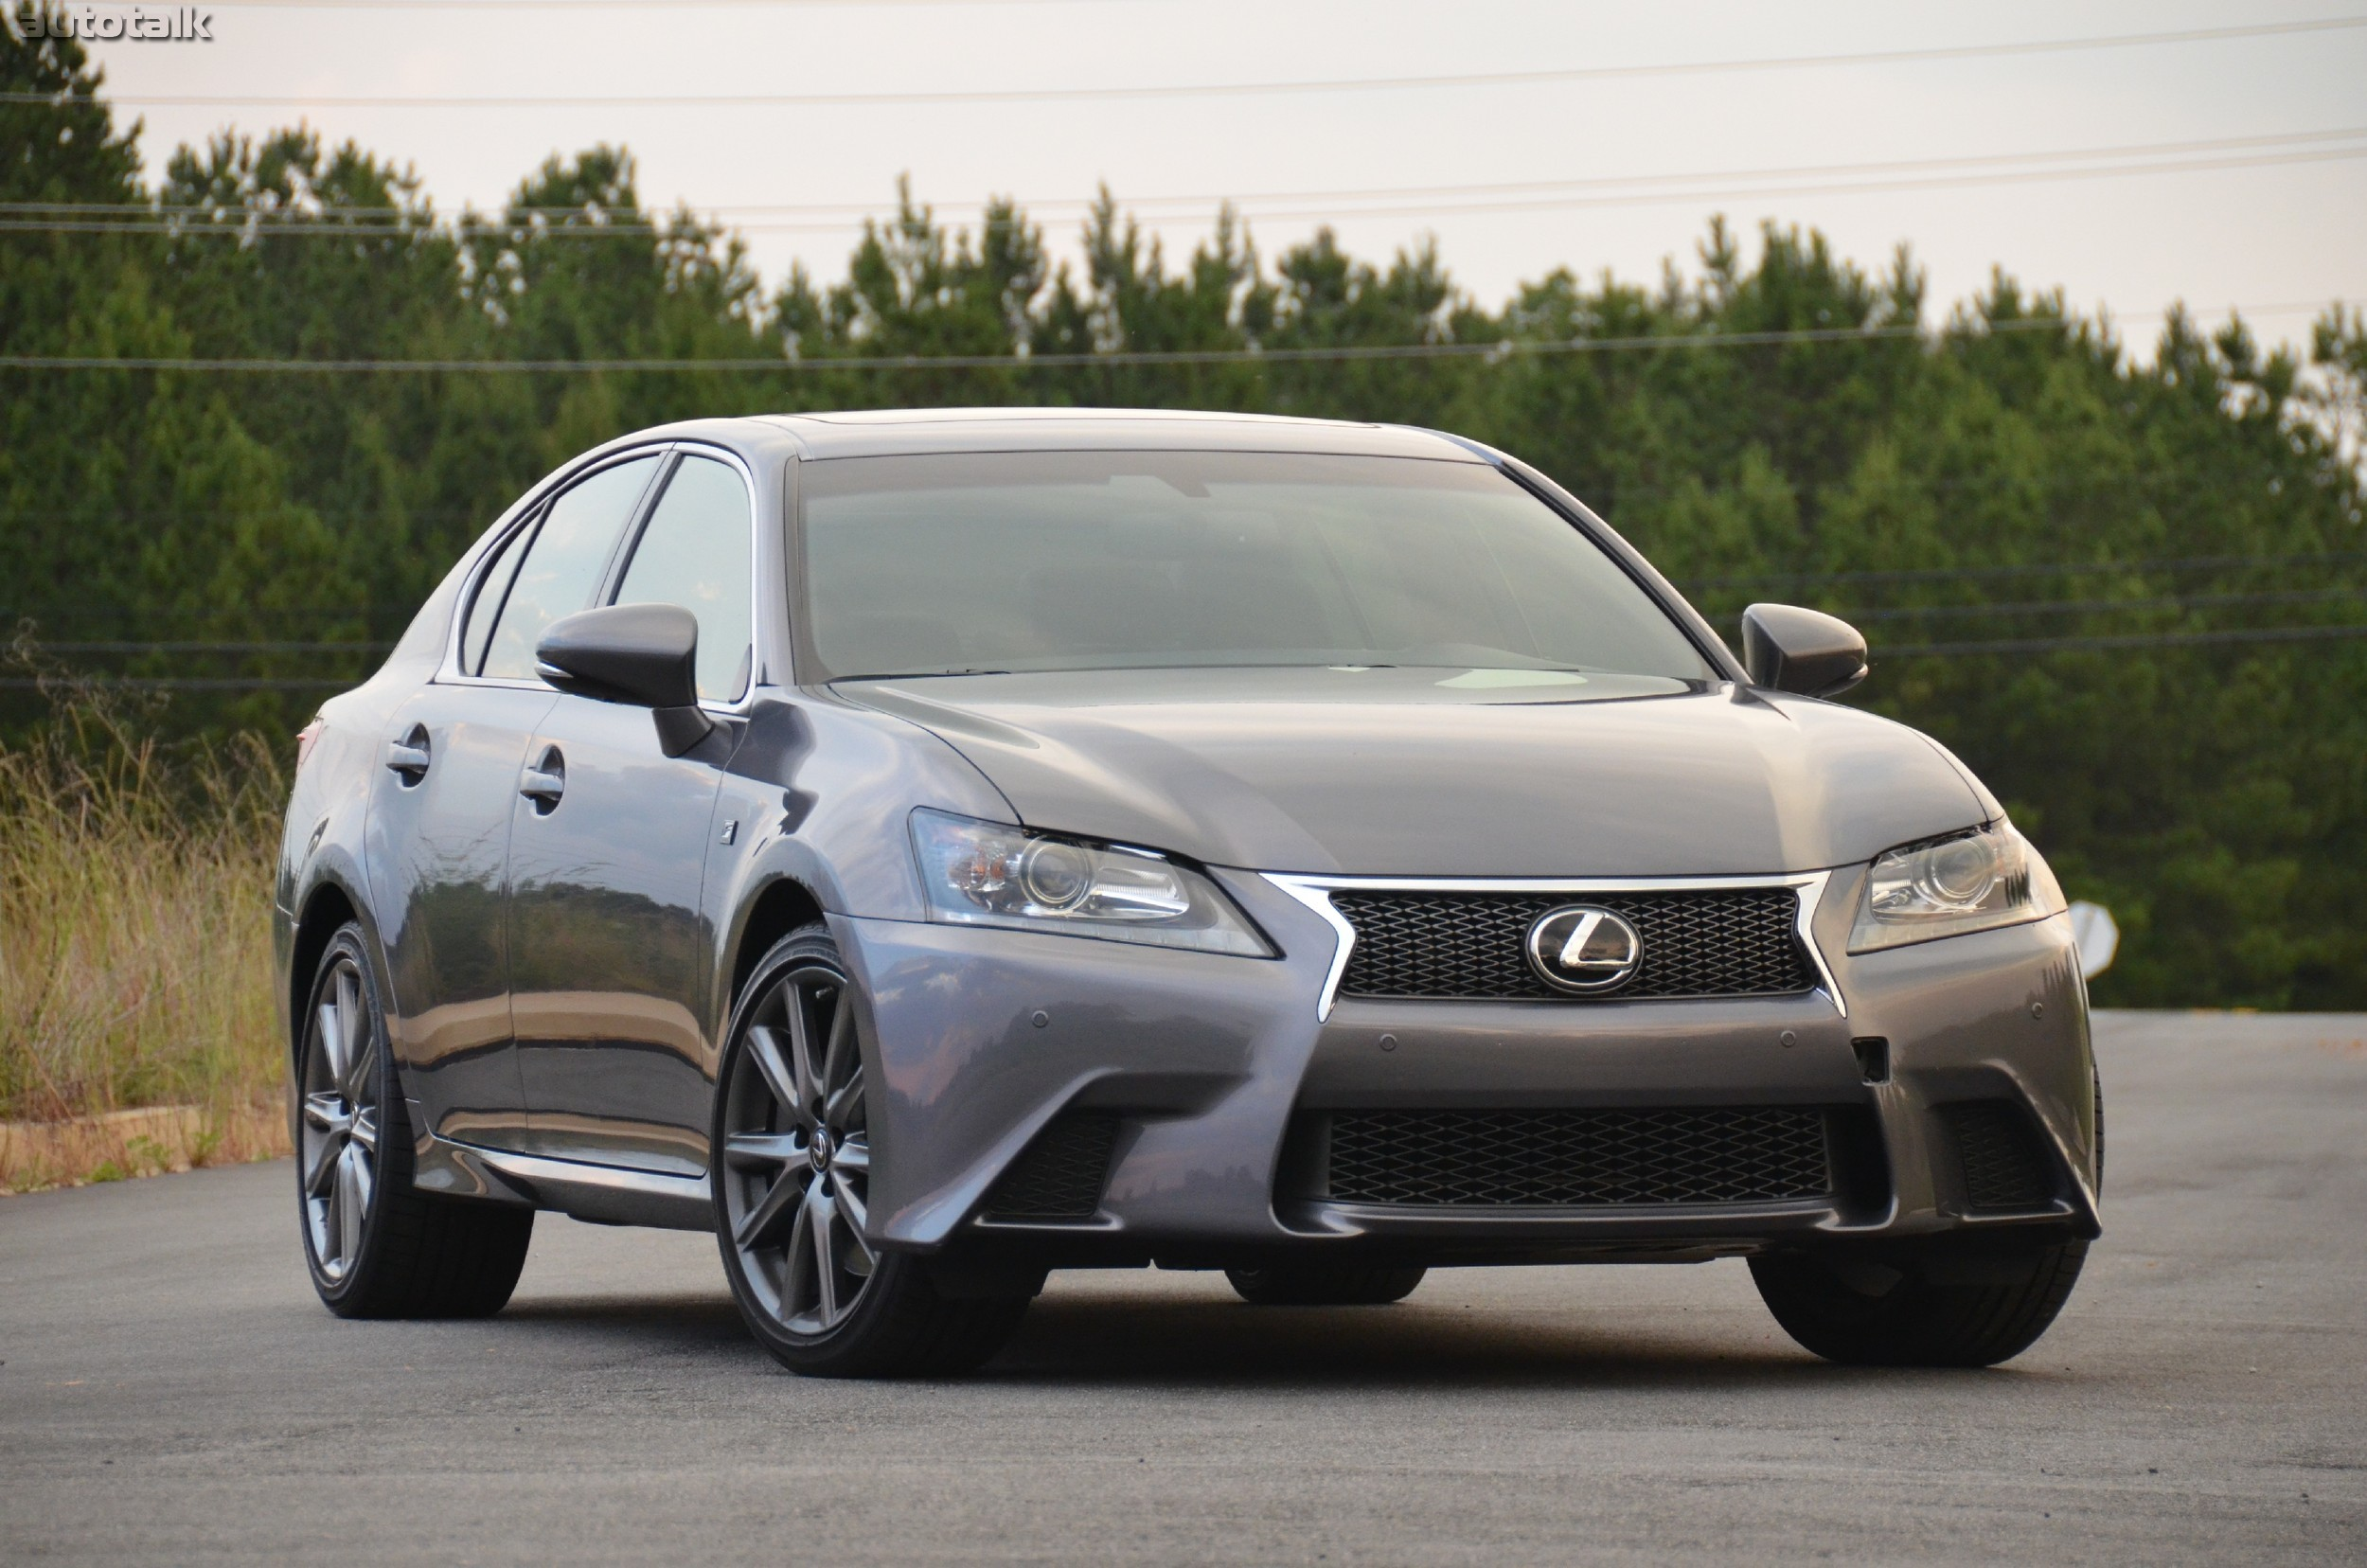 2013 Lexus GS 350 F Sport Review • AutoTalk